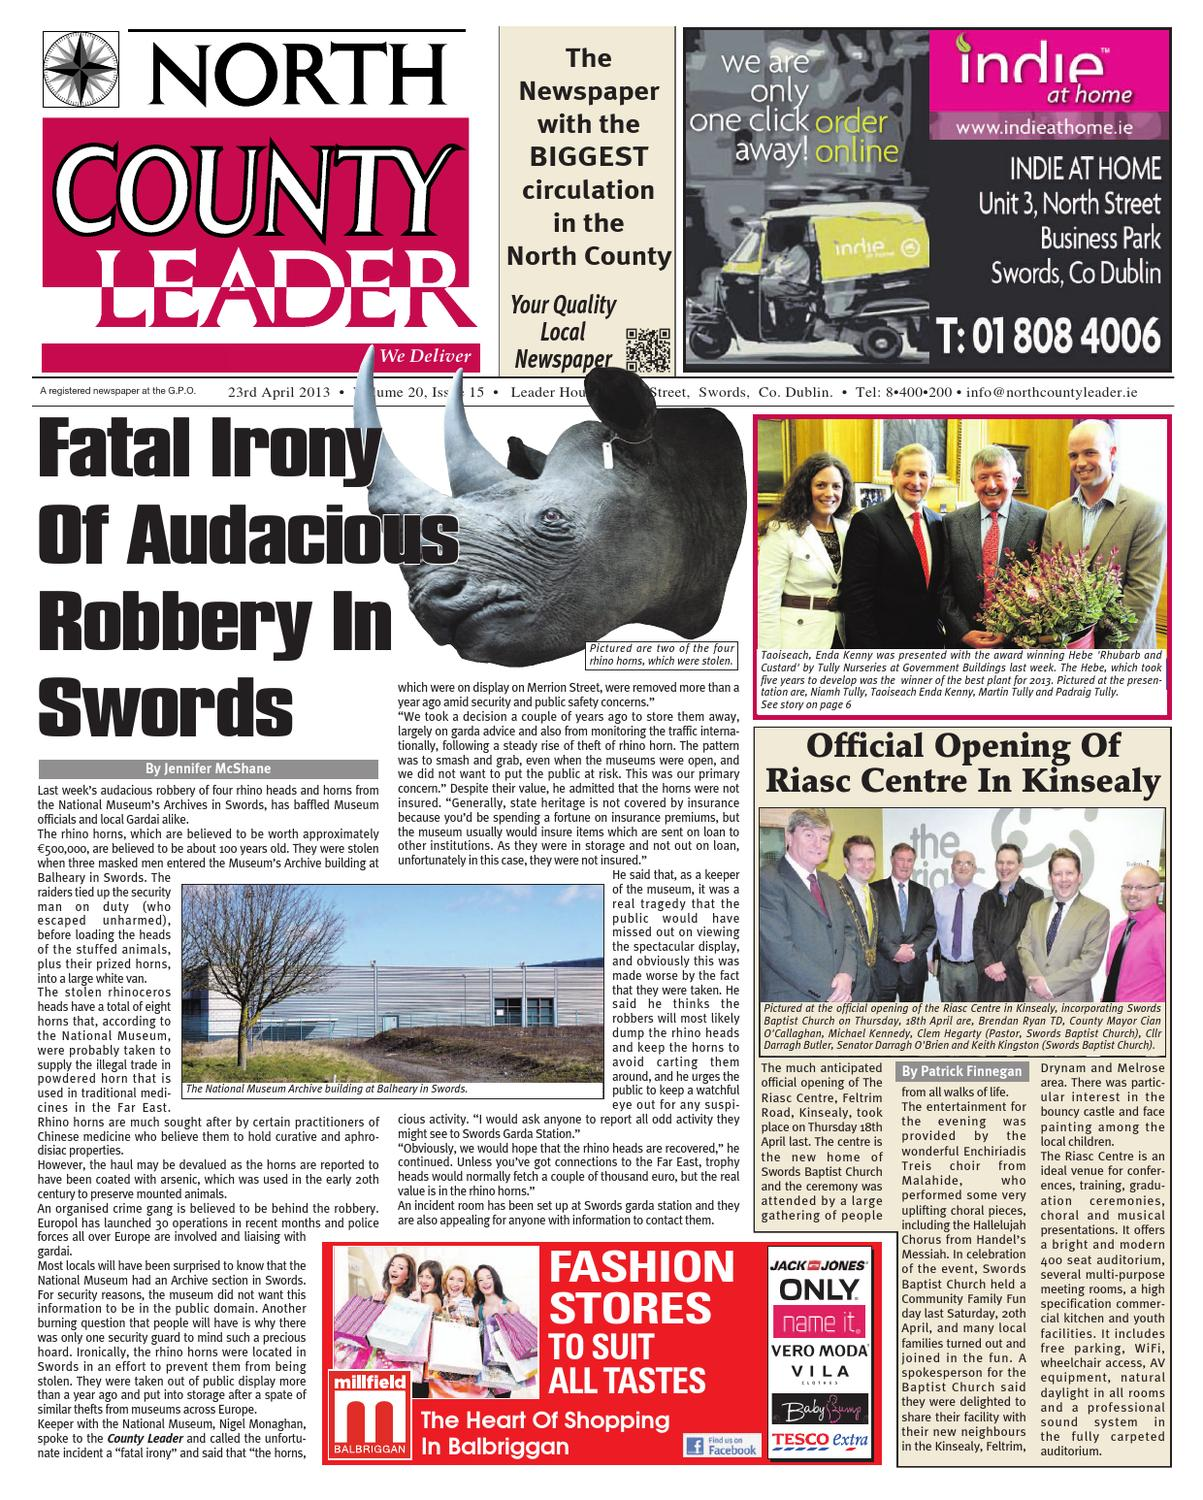 North County Leader 23 April 2013 by sean fitzmaurice - issuu 30593f9ec060f